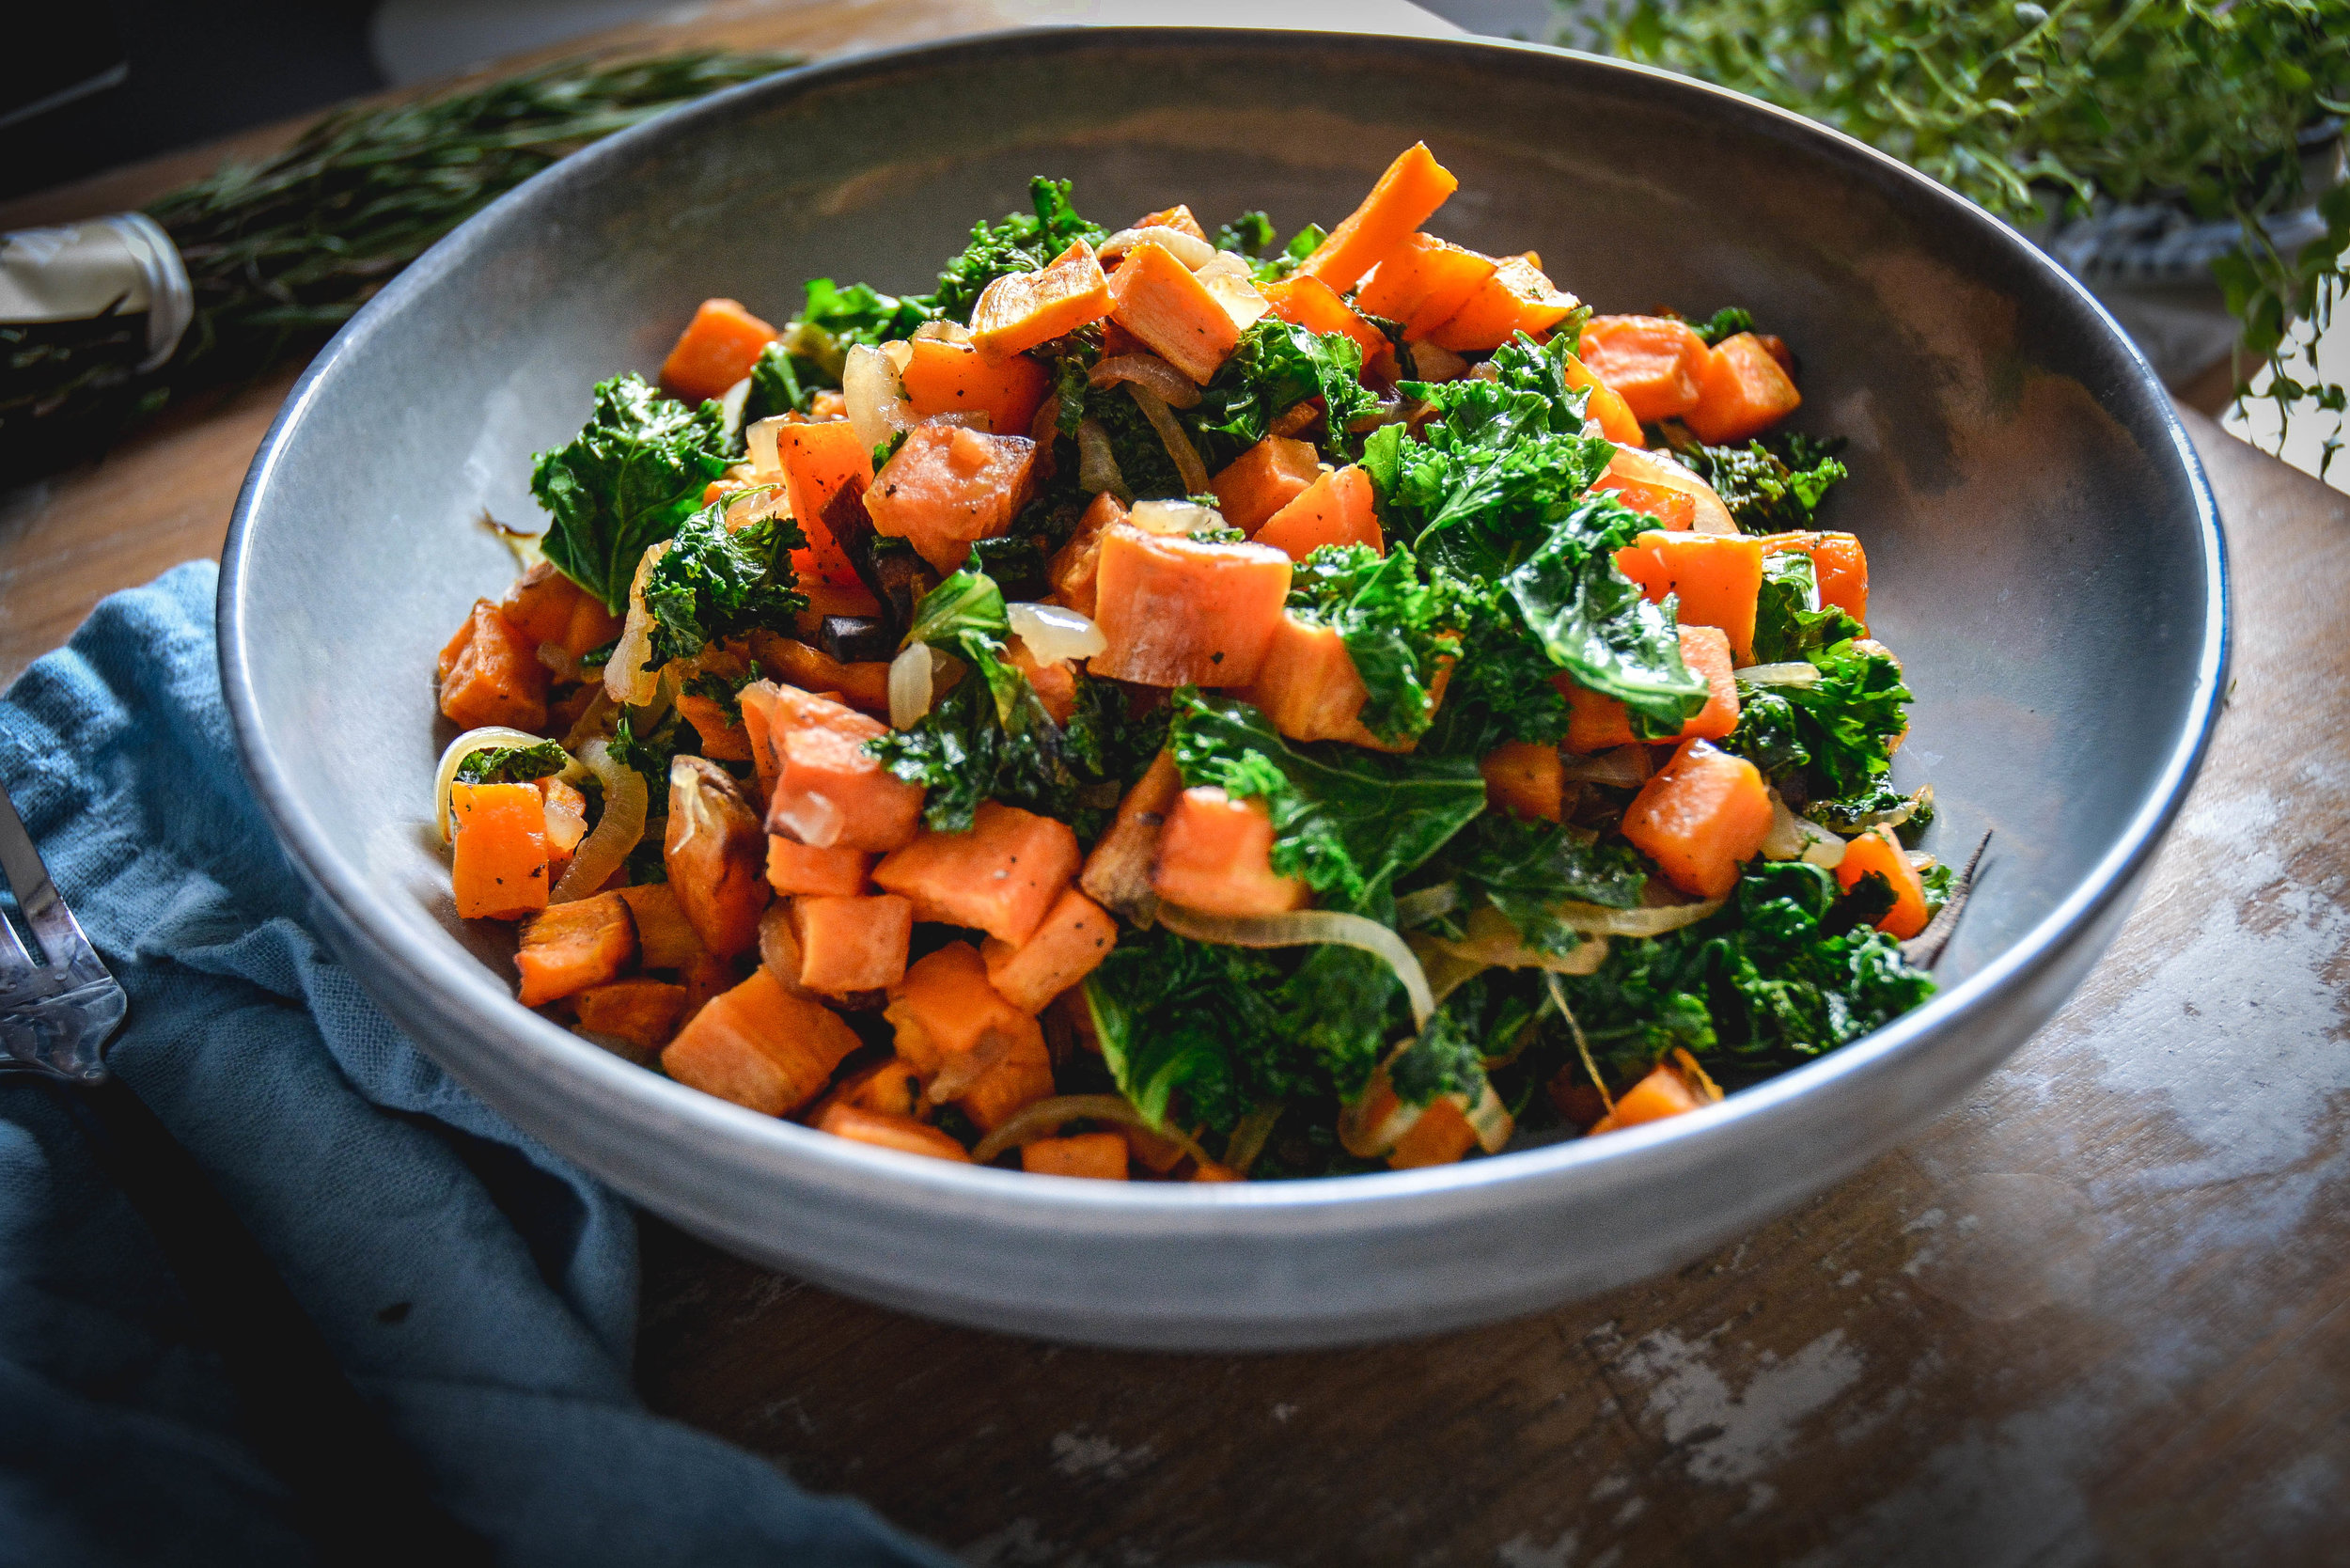 sweet potatoes with kale in bowl, on table with blue napkin